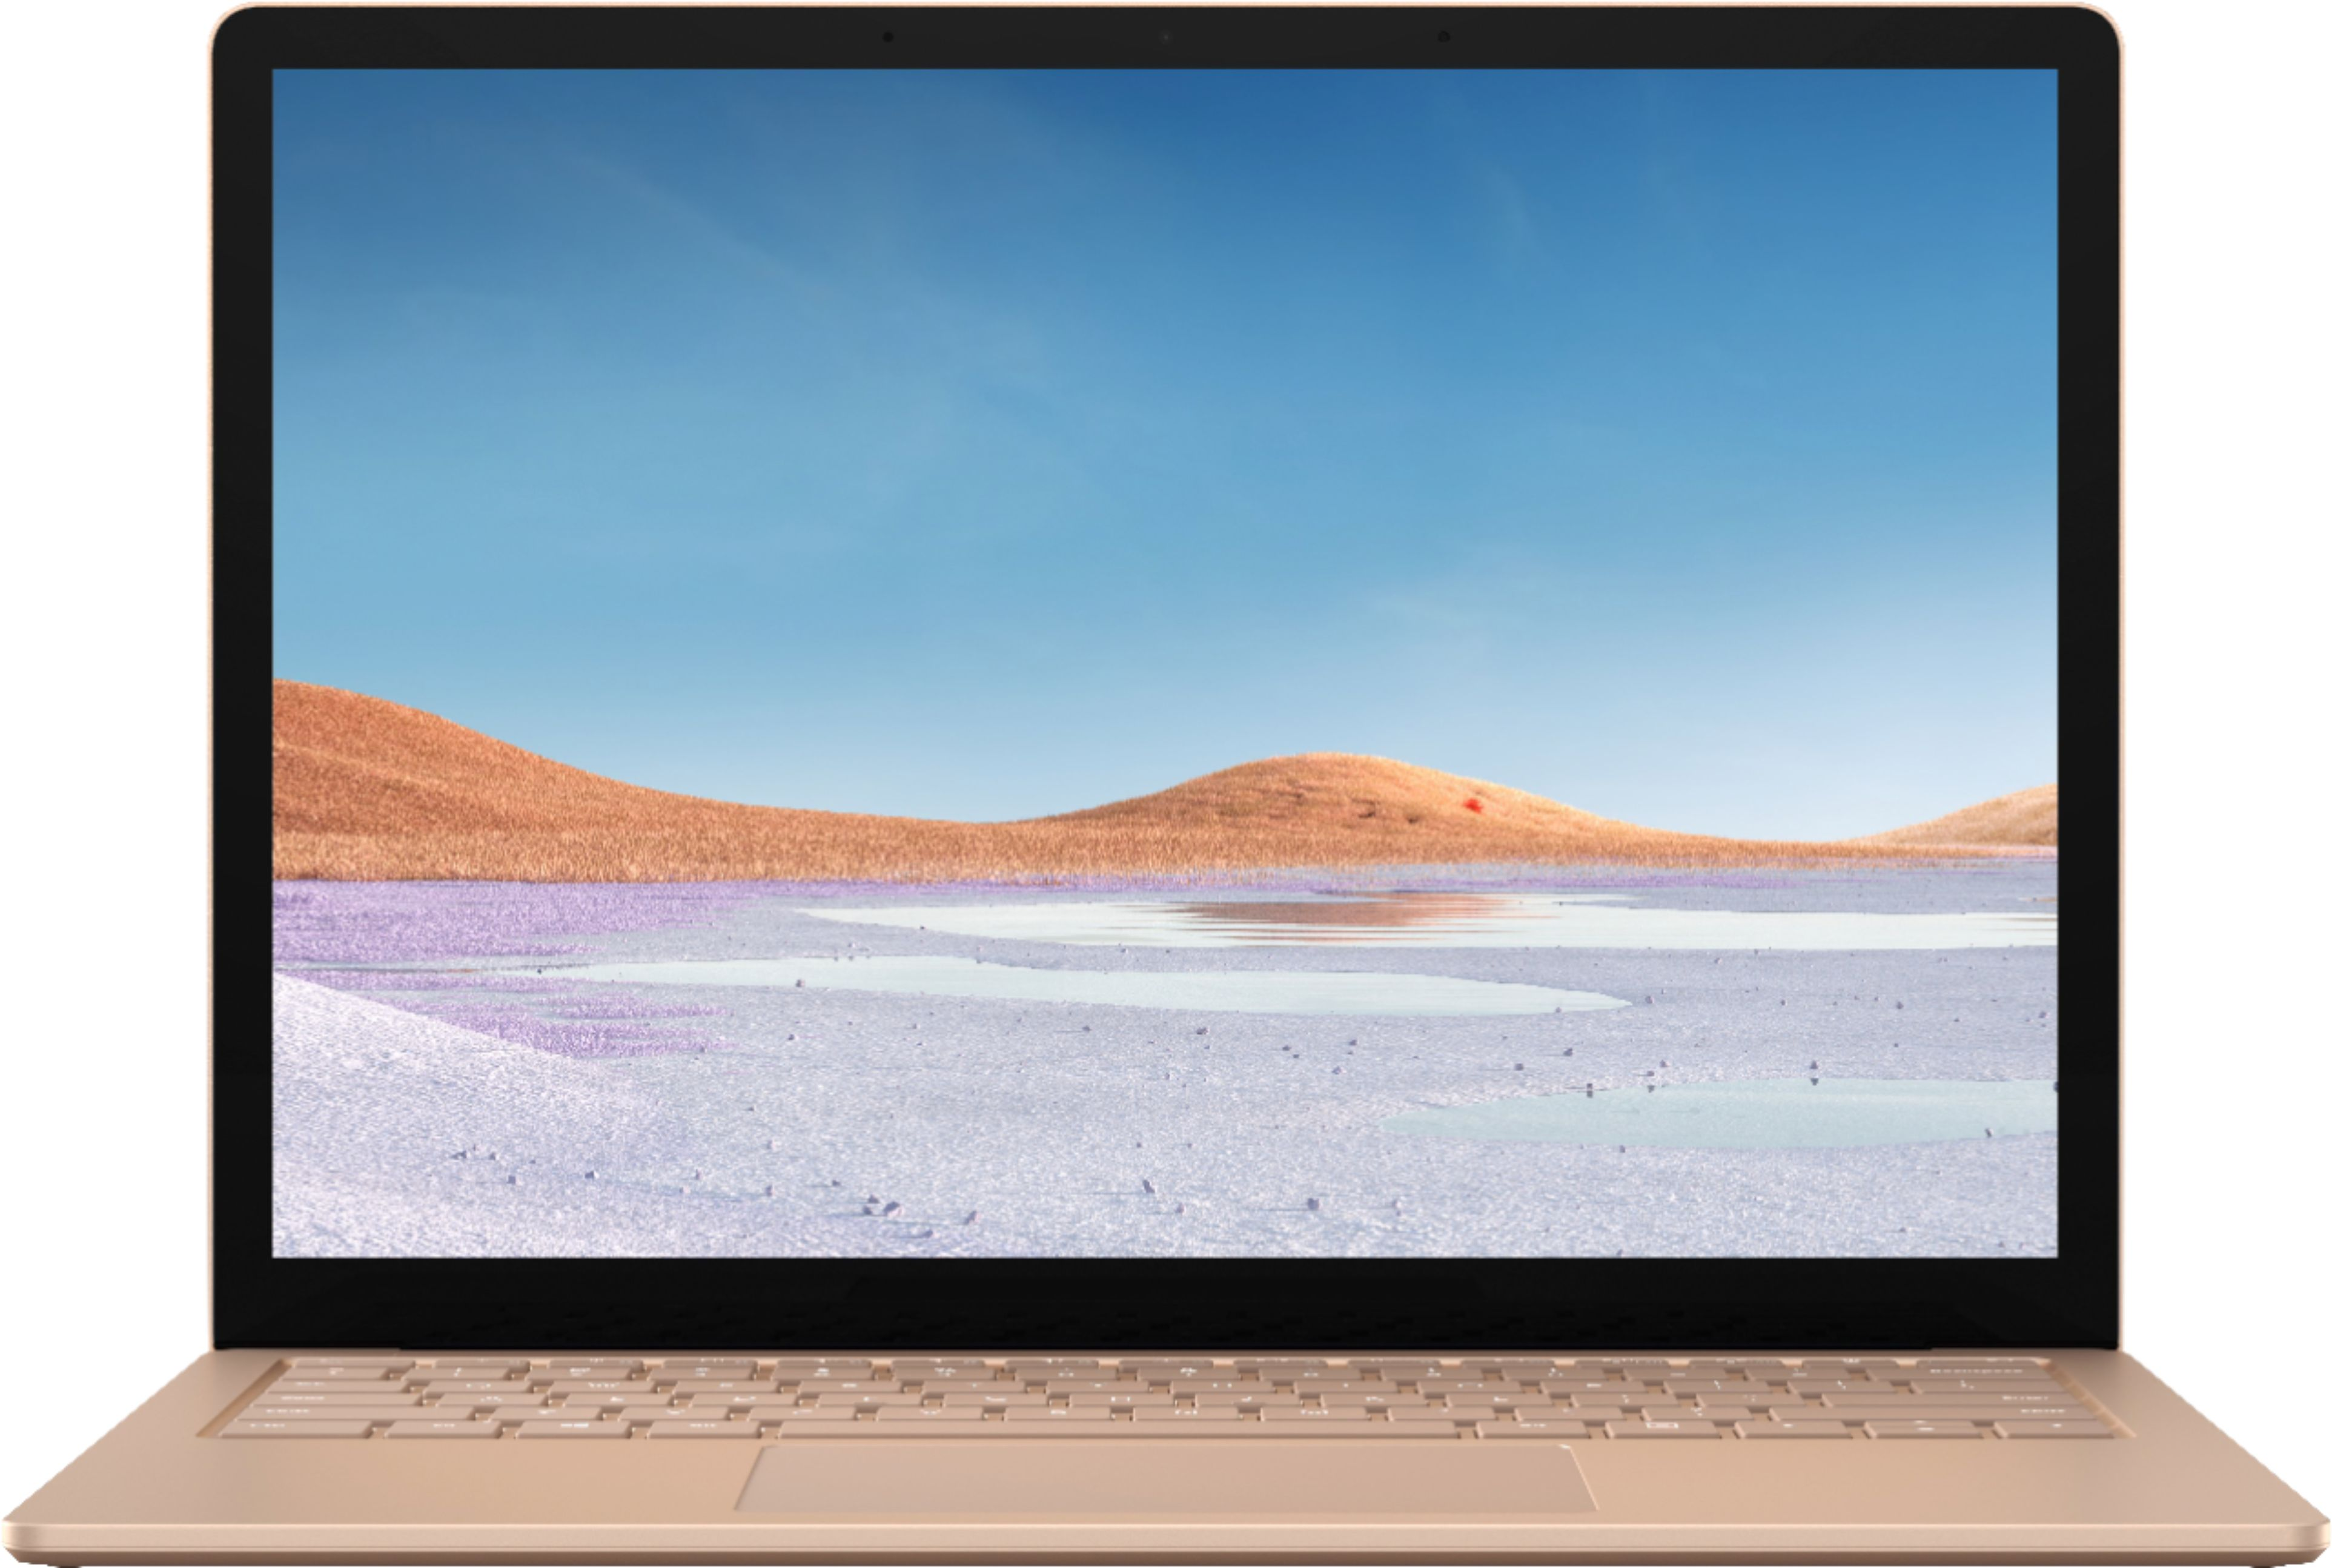 """Alt View Zoom 11. Microsoft - Surface Laptop 3 - 13.5"""" Touch-Screen - Intel Core i7 - 16GB Memory - 512GB Solid State Drive (Latest Model) - Sandstone."""